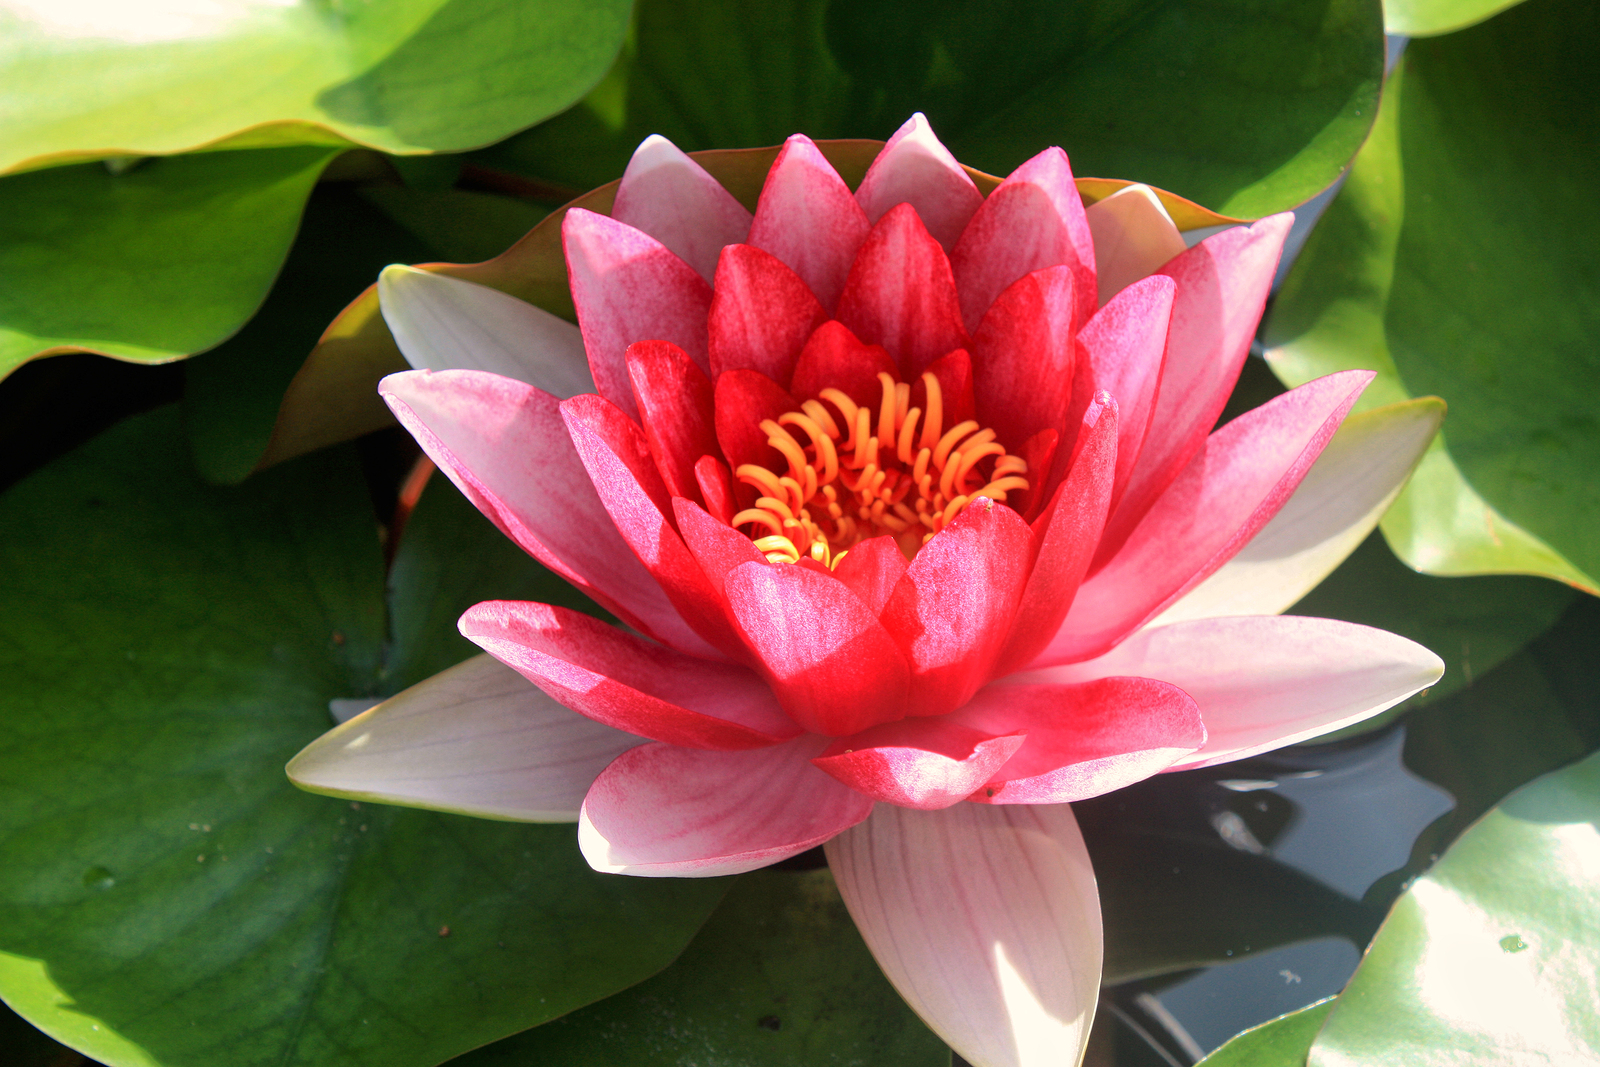 Pink water lily in a pond on a sunny day